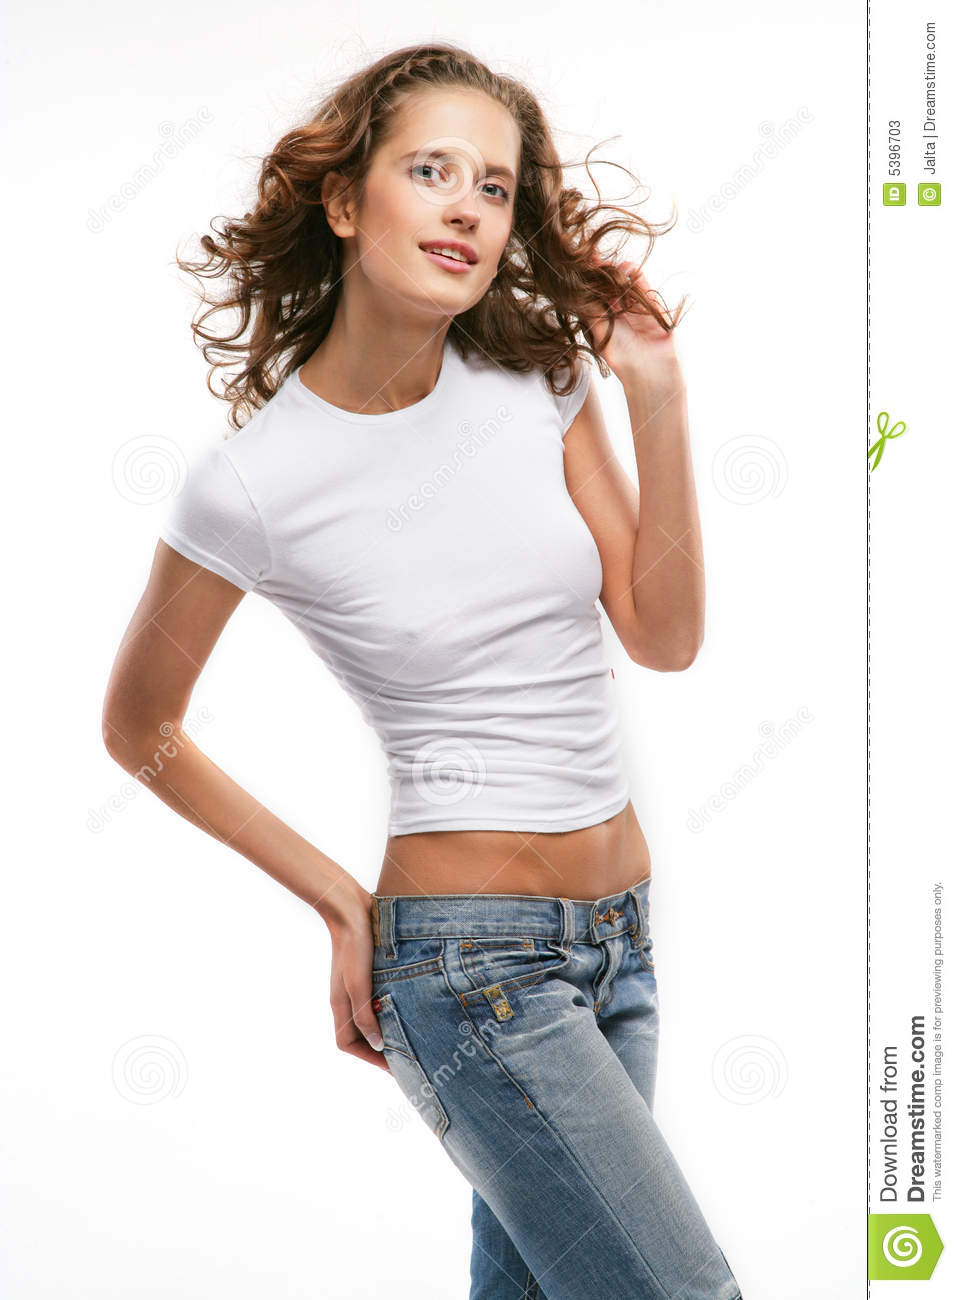 The Beautiful Girl In Jeans Stock Photos - Image 5396703